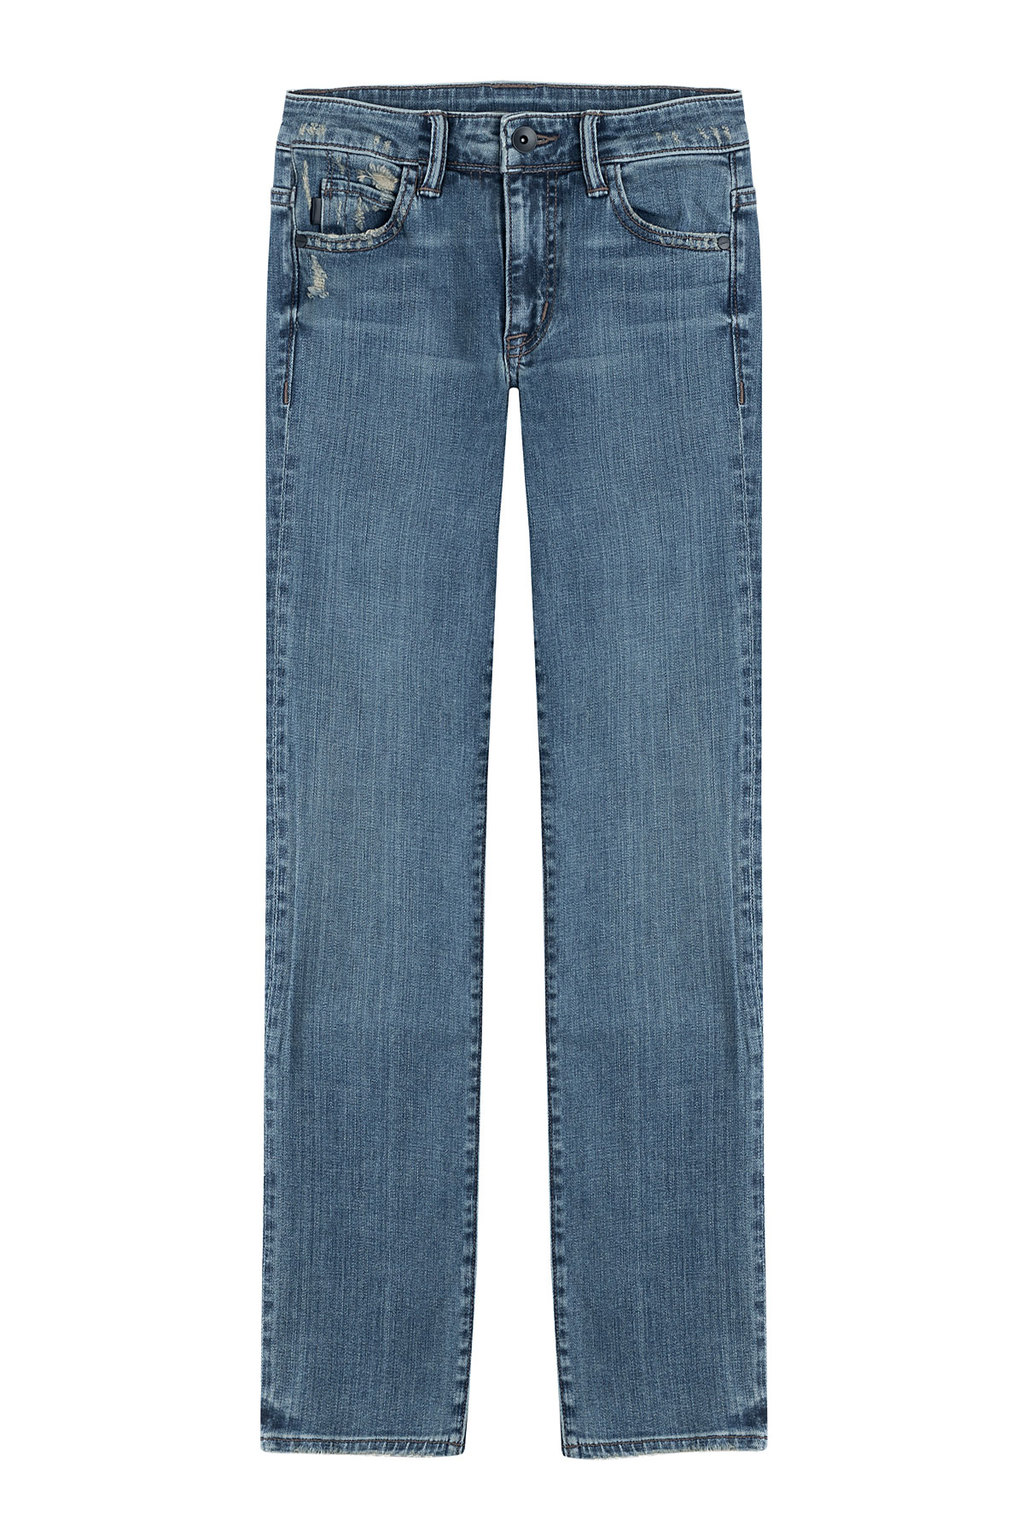 Skinny Jeans Blue - pattern: plain; pocket detail: traditional 5 pocket; style: slim leg; waist: mid/regular rise; predominant colour: denim; occasions: casual, creative work; length: ankle length; fibres: cotton - stretch; texture group: denim; pattern type: fabric; season: a/w 2015